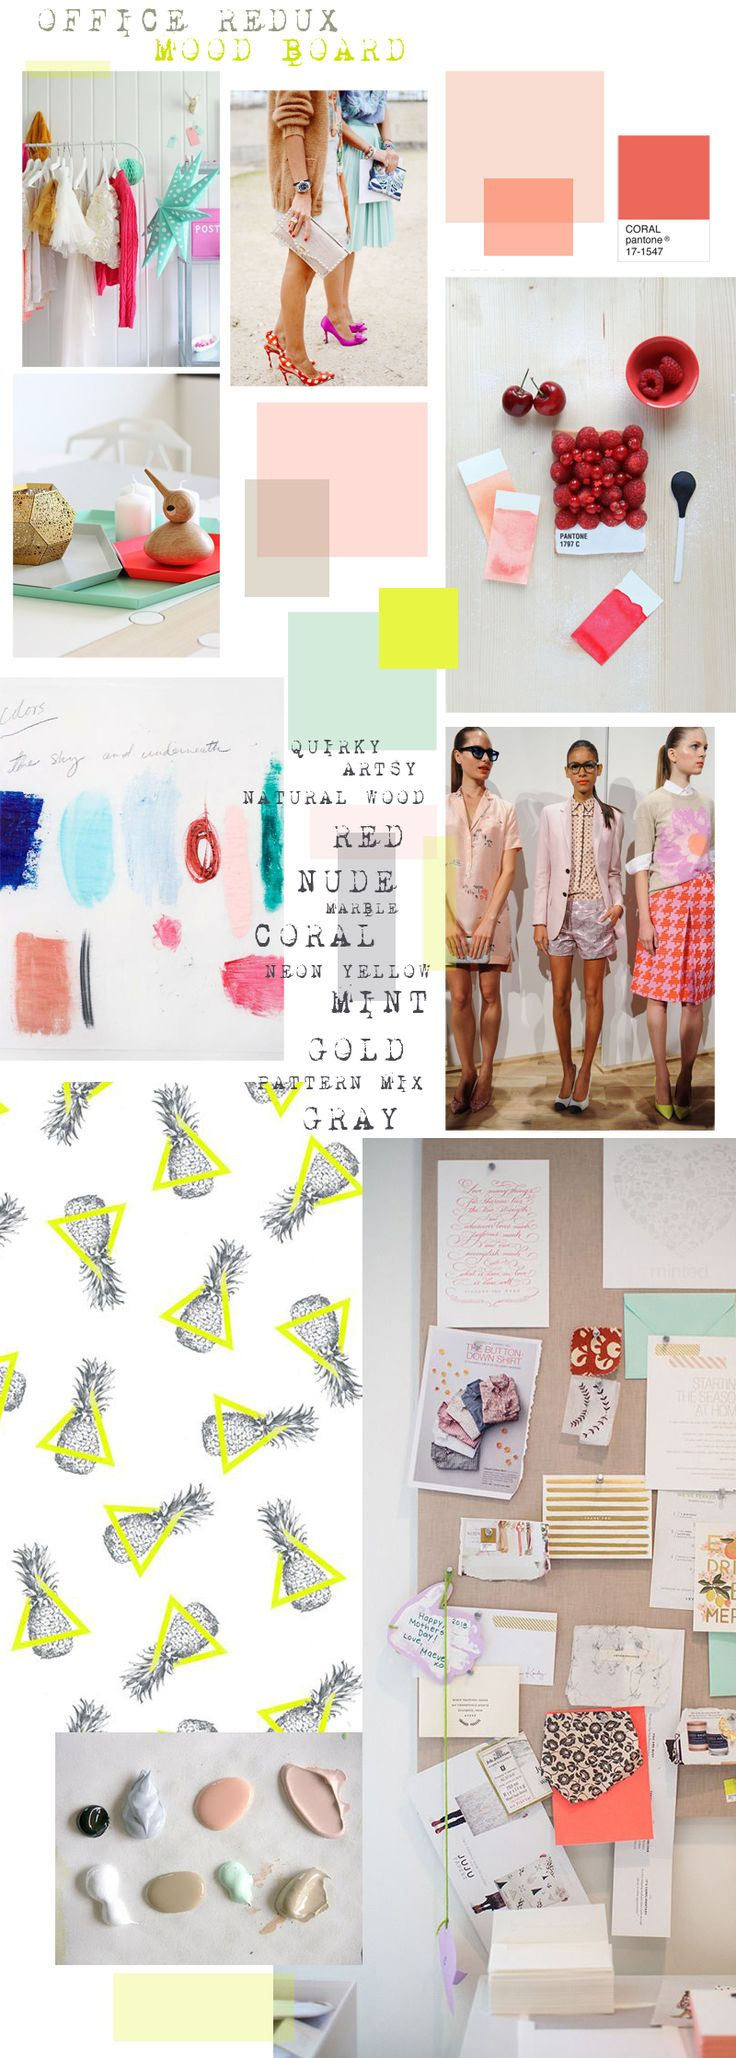 Colors: Mint, Nude, Blush, Coral, Shots of red, Shots of neon yellow, black, gray  Materials/Etc.: Natural wood, white glossy furniture, marble, metallic gold, lucite, glass, lots of pattern